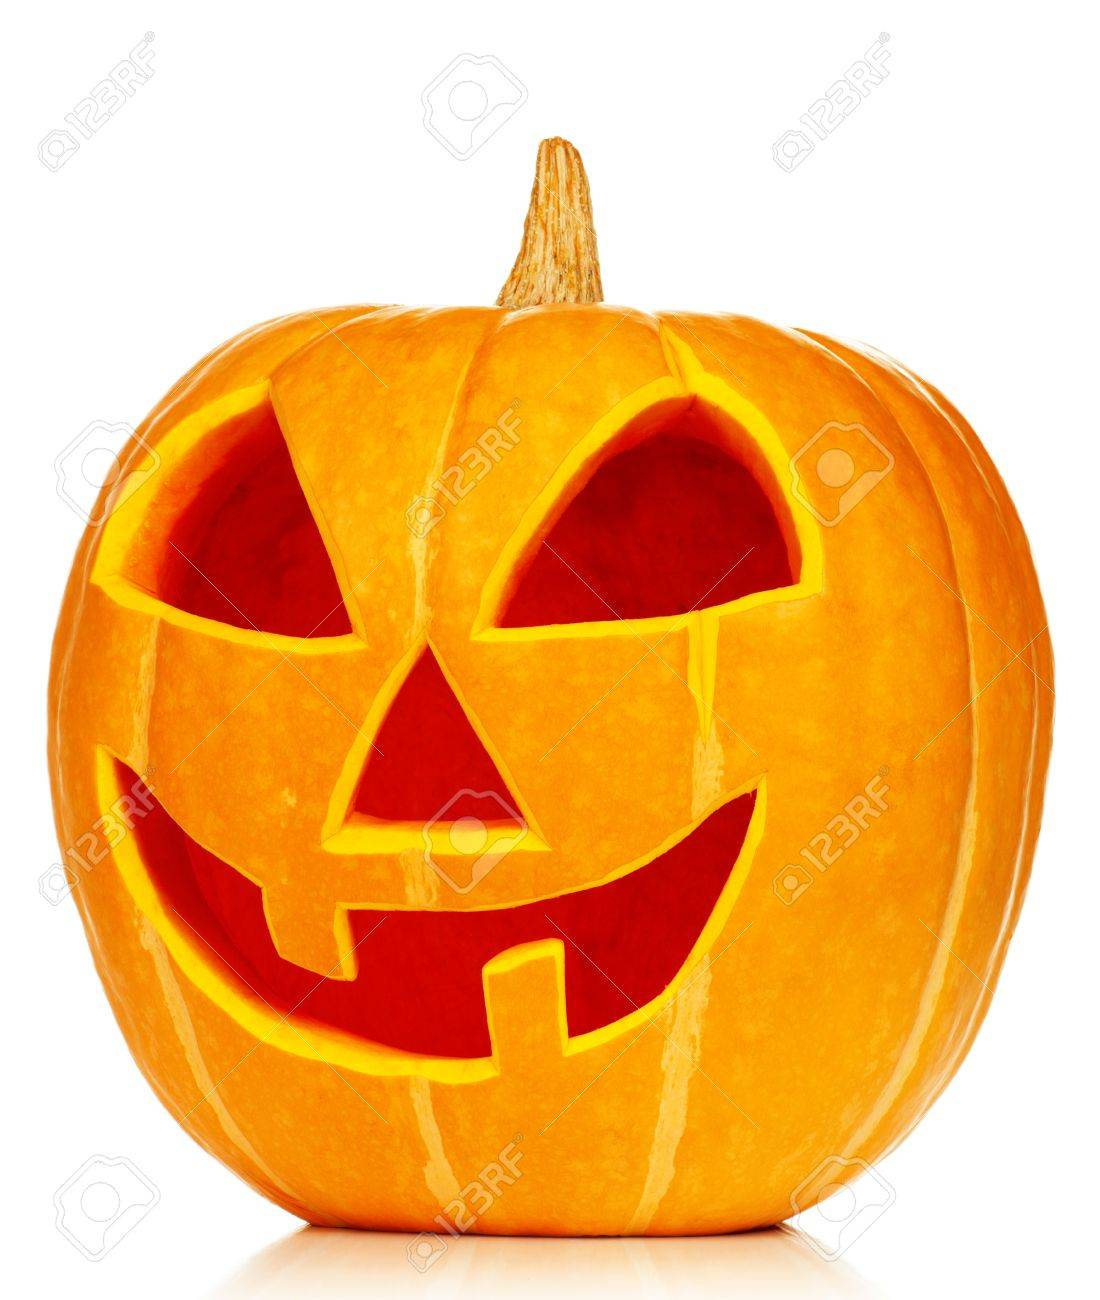 Funny Halloween pumpkin isolated on white background Stock Photo - 14764933